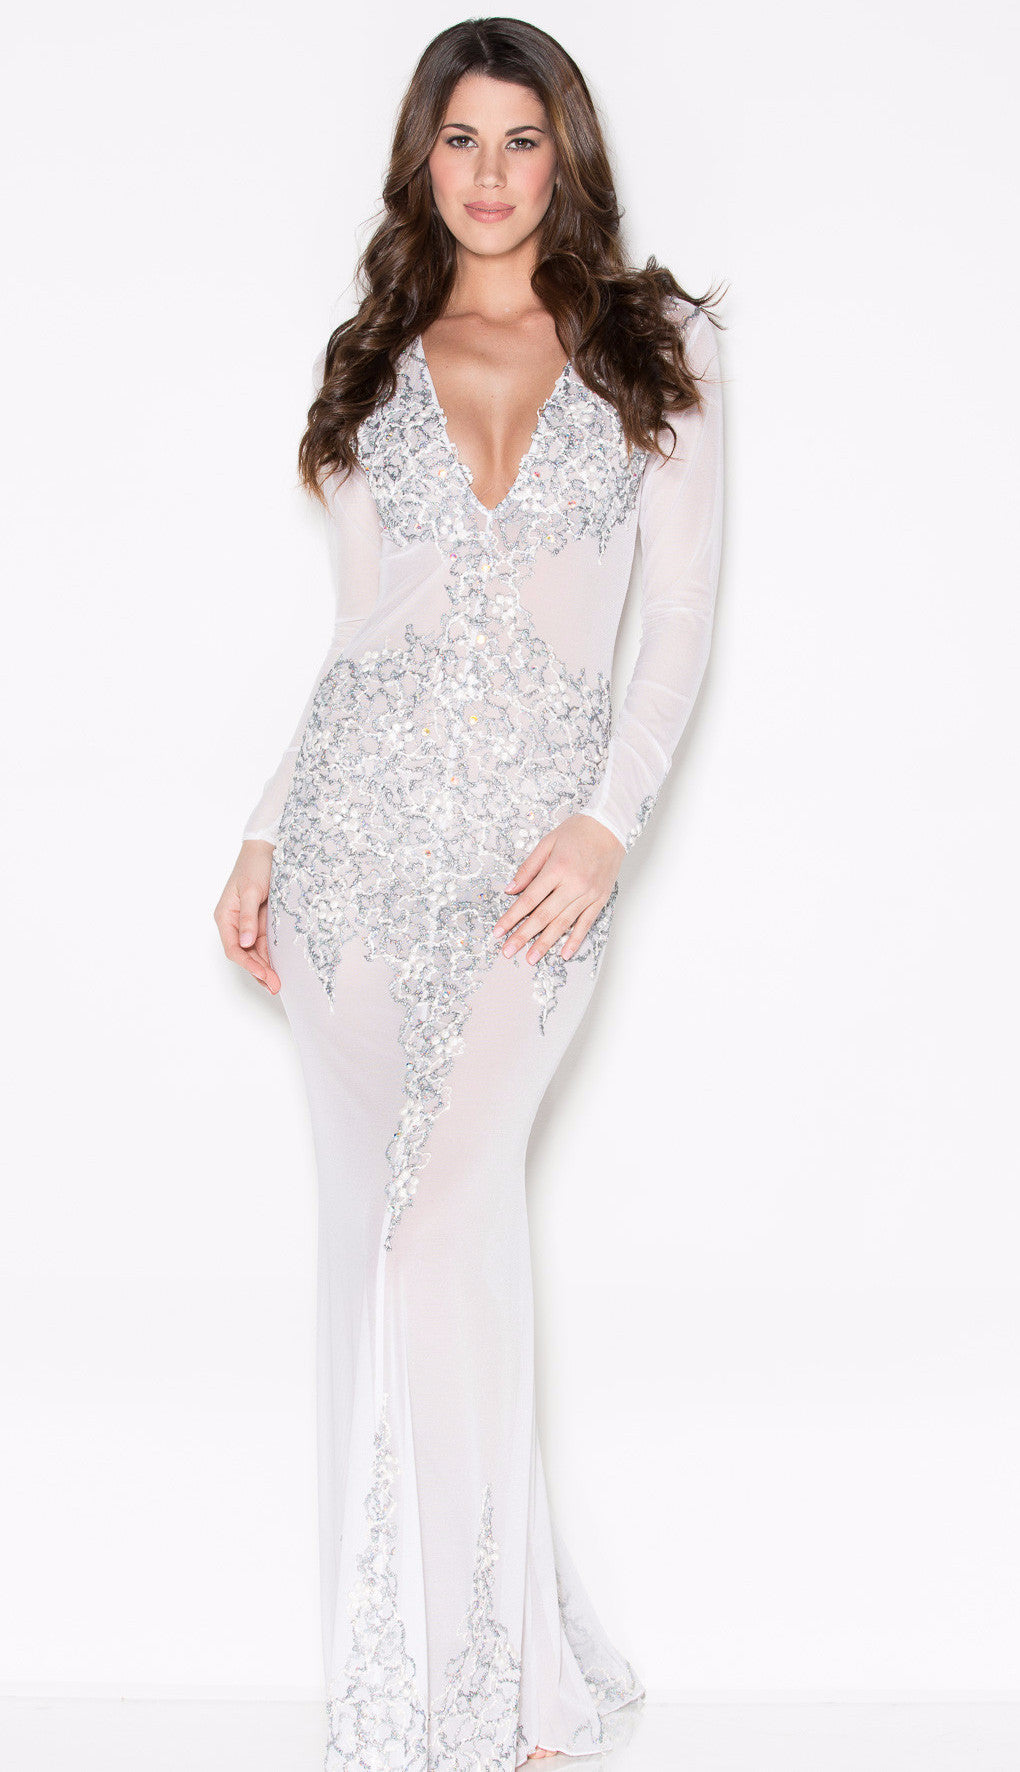 BEYONCE GOWN IN WHITE AND SILVER - HOLT